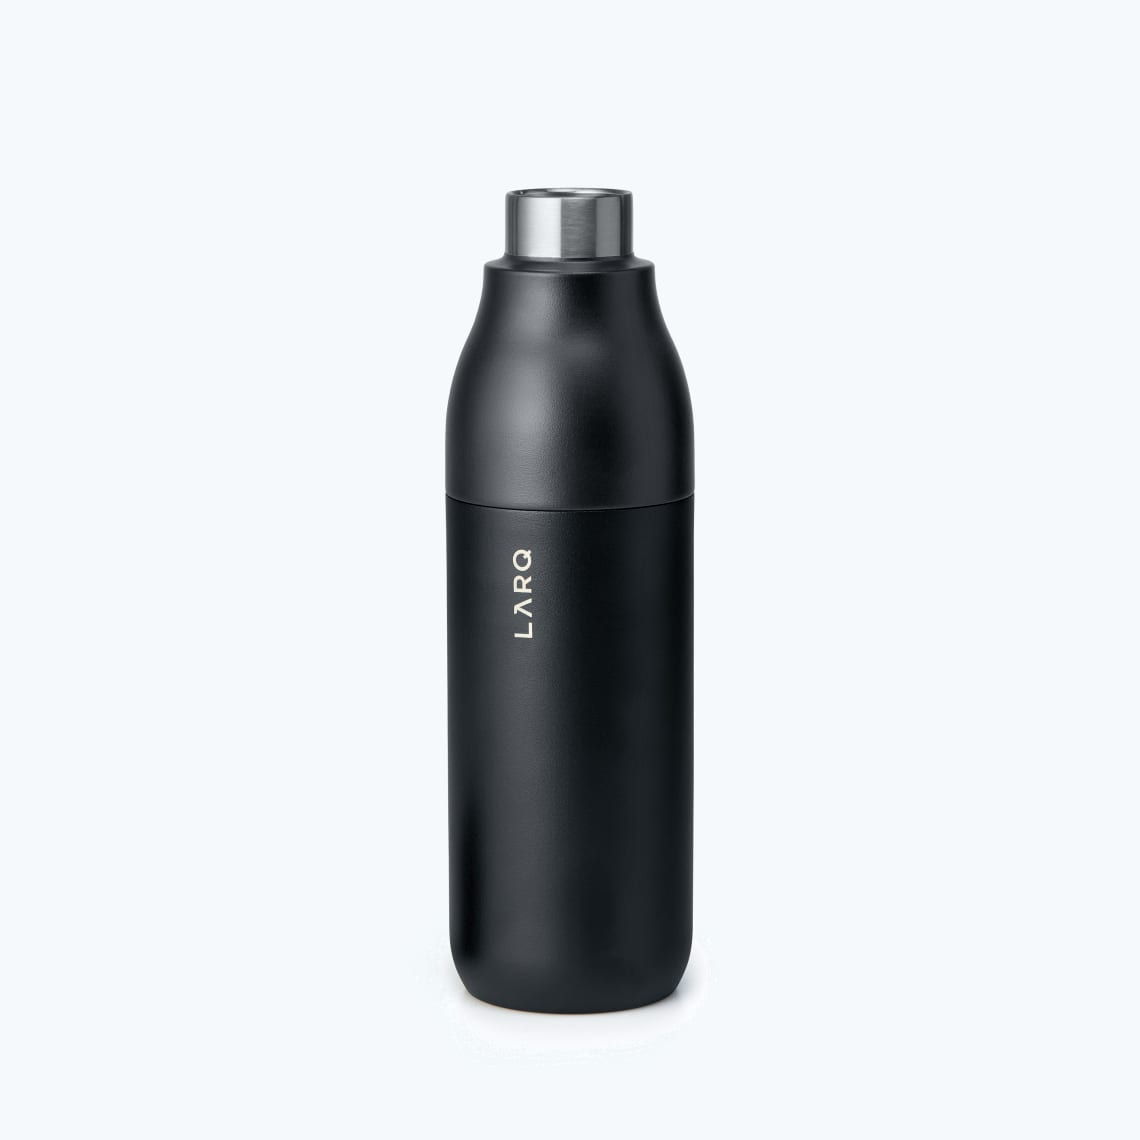 LARQ Bottle Obsidian Black secondary alternative